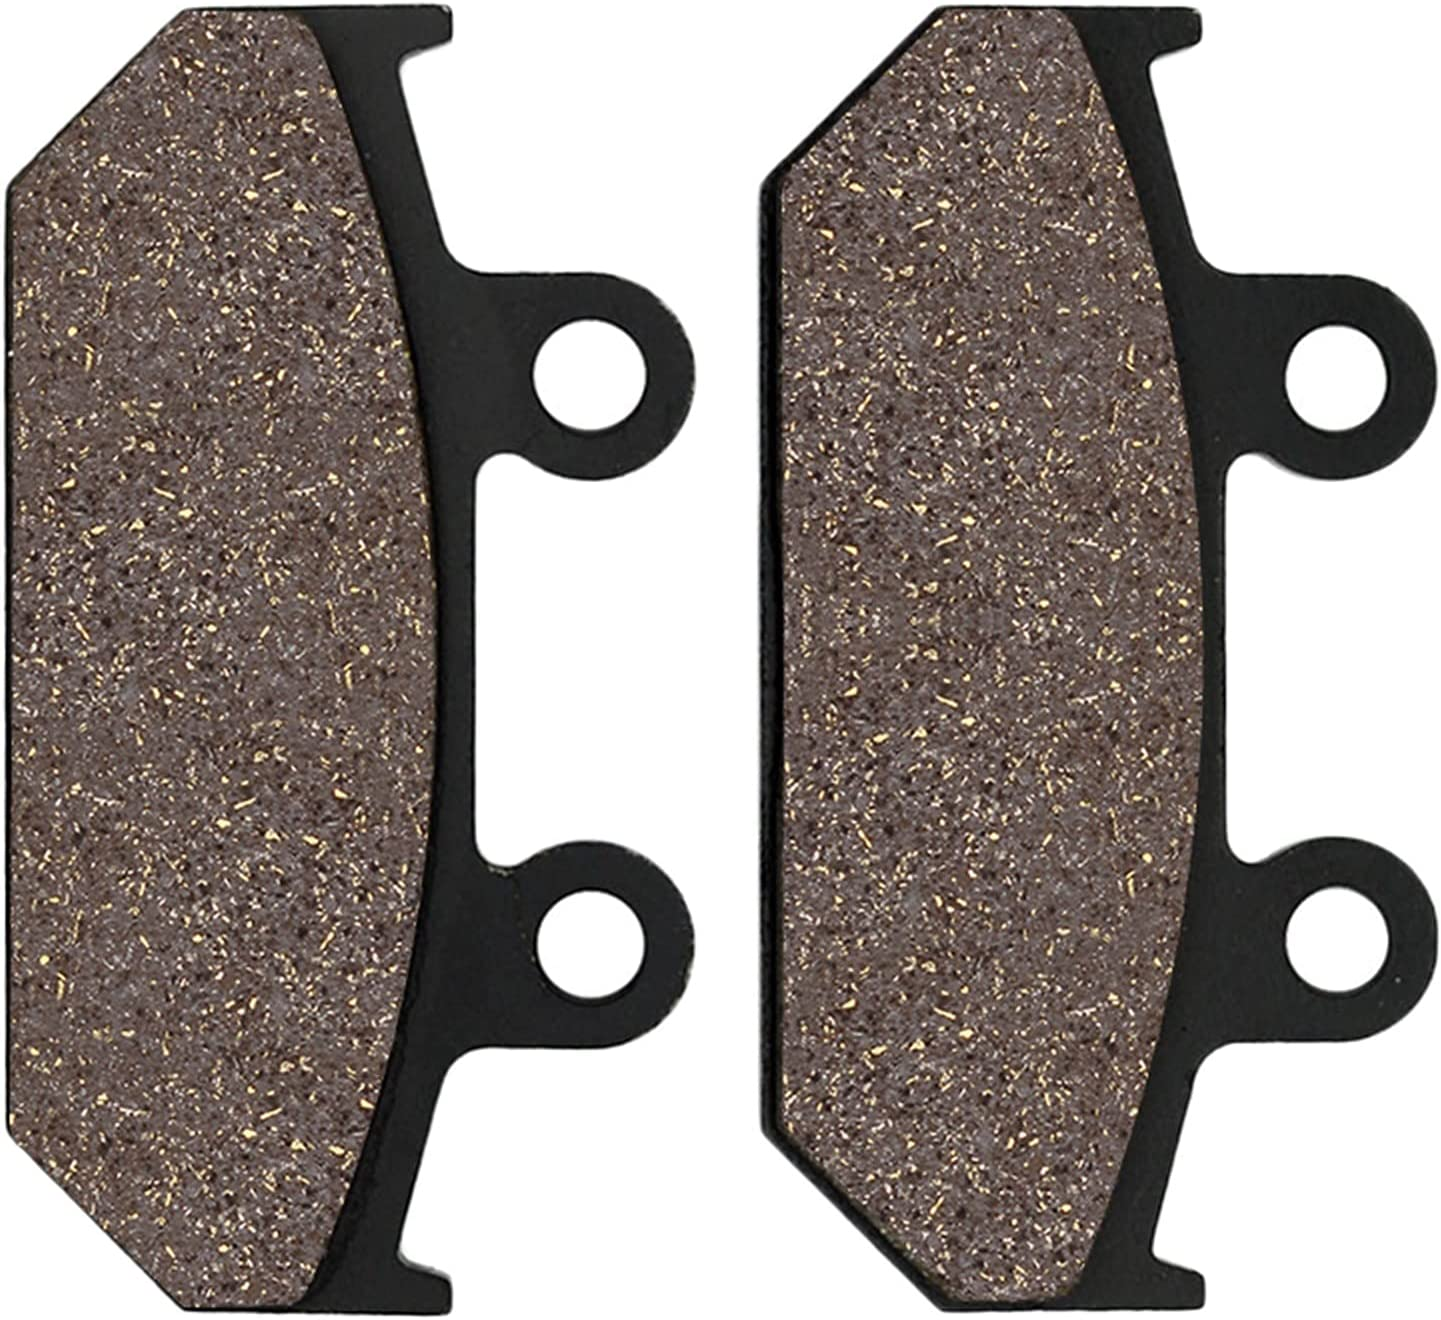 Motorcycle Rear Brake Pads Dedication for Special price a limited time Suzuki 2007 AN250 250 an Skywave